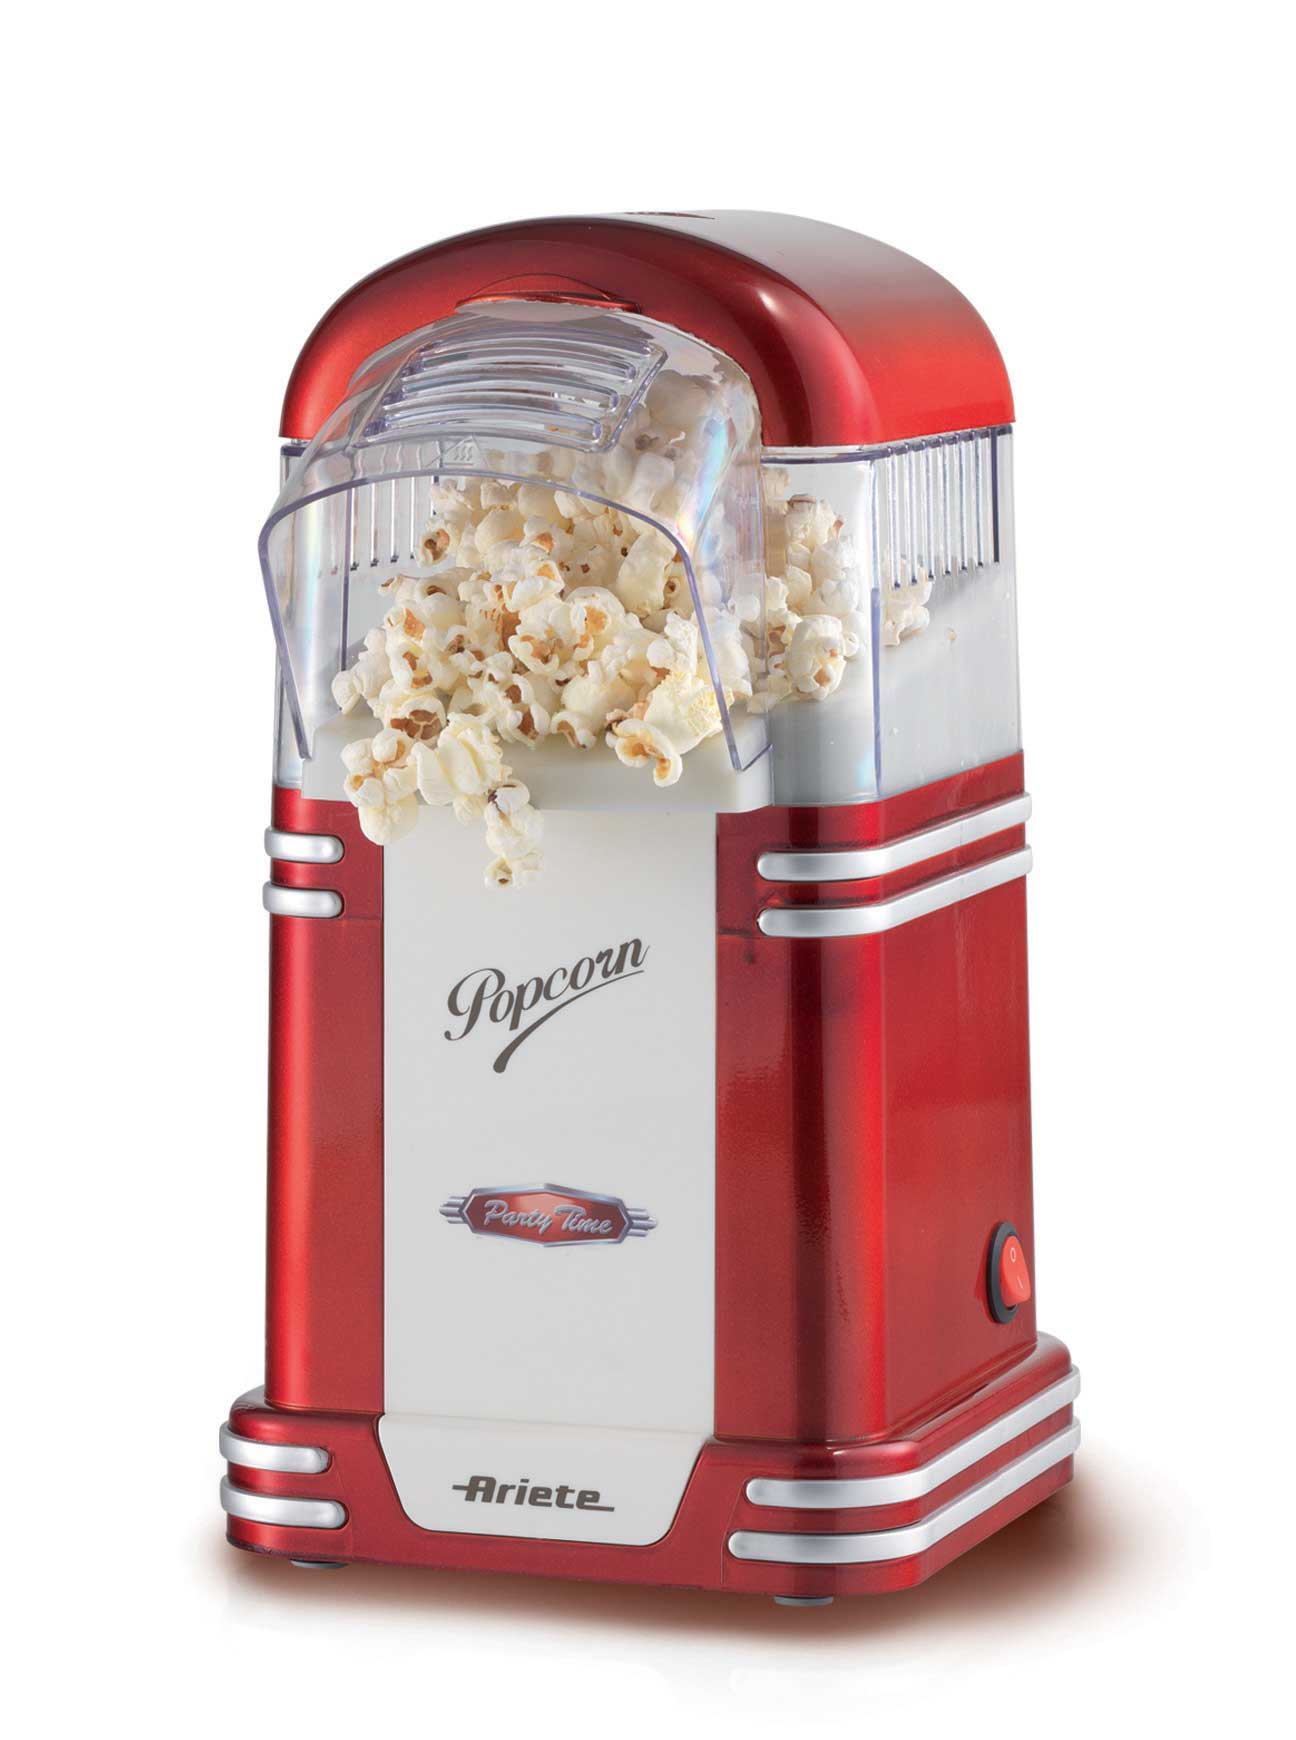 Ariete Popcorn Popper Party Time